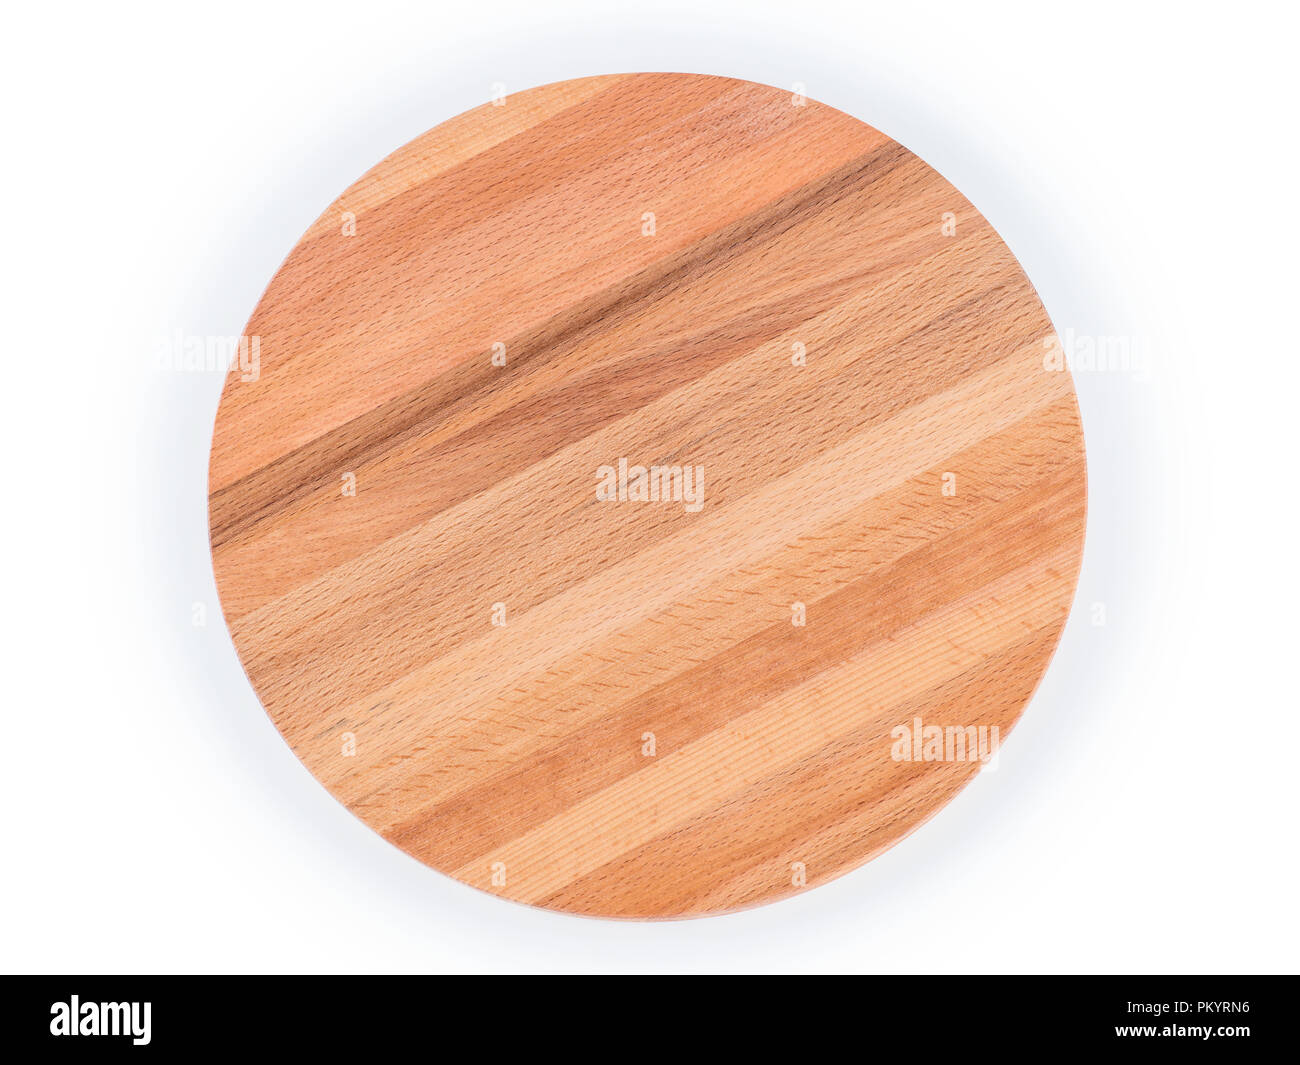 Round Wooden Cutting Board Top View Isolated On White Clipping Path Included Stock Photo Alamy